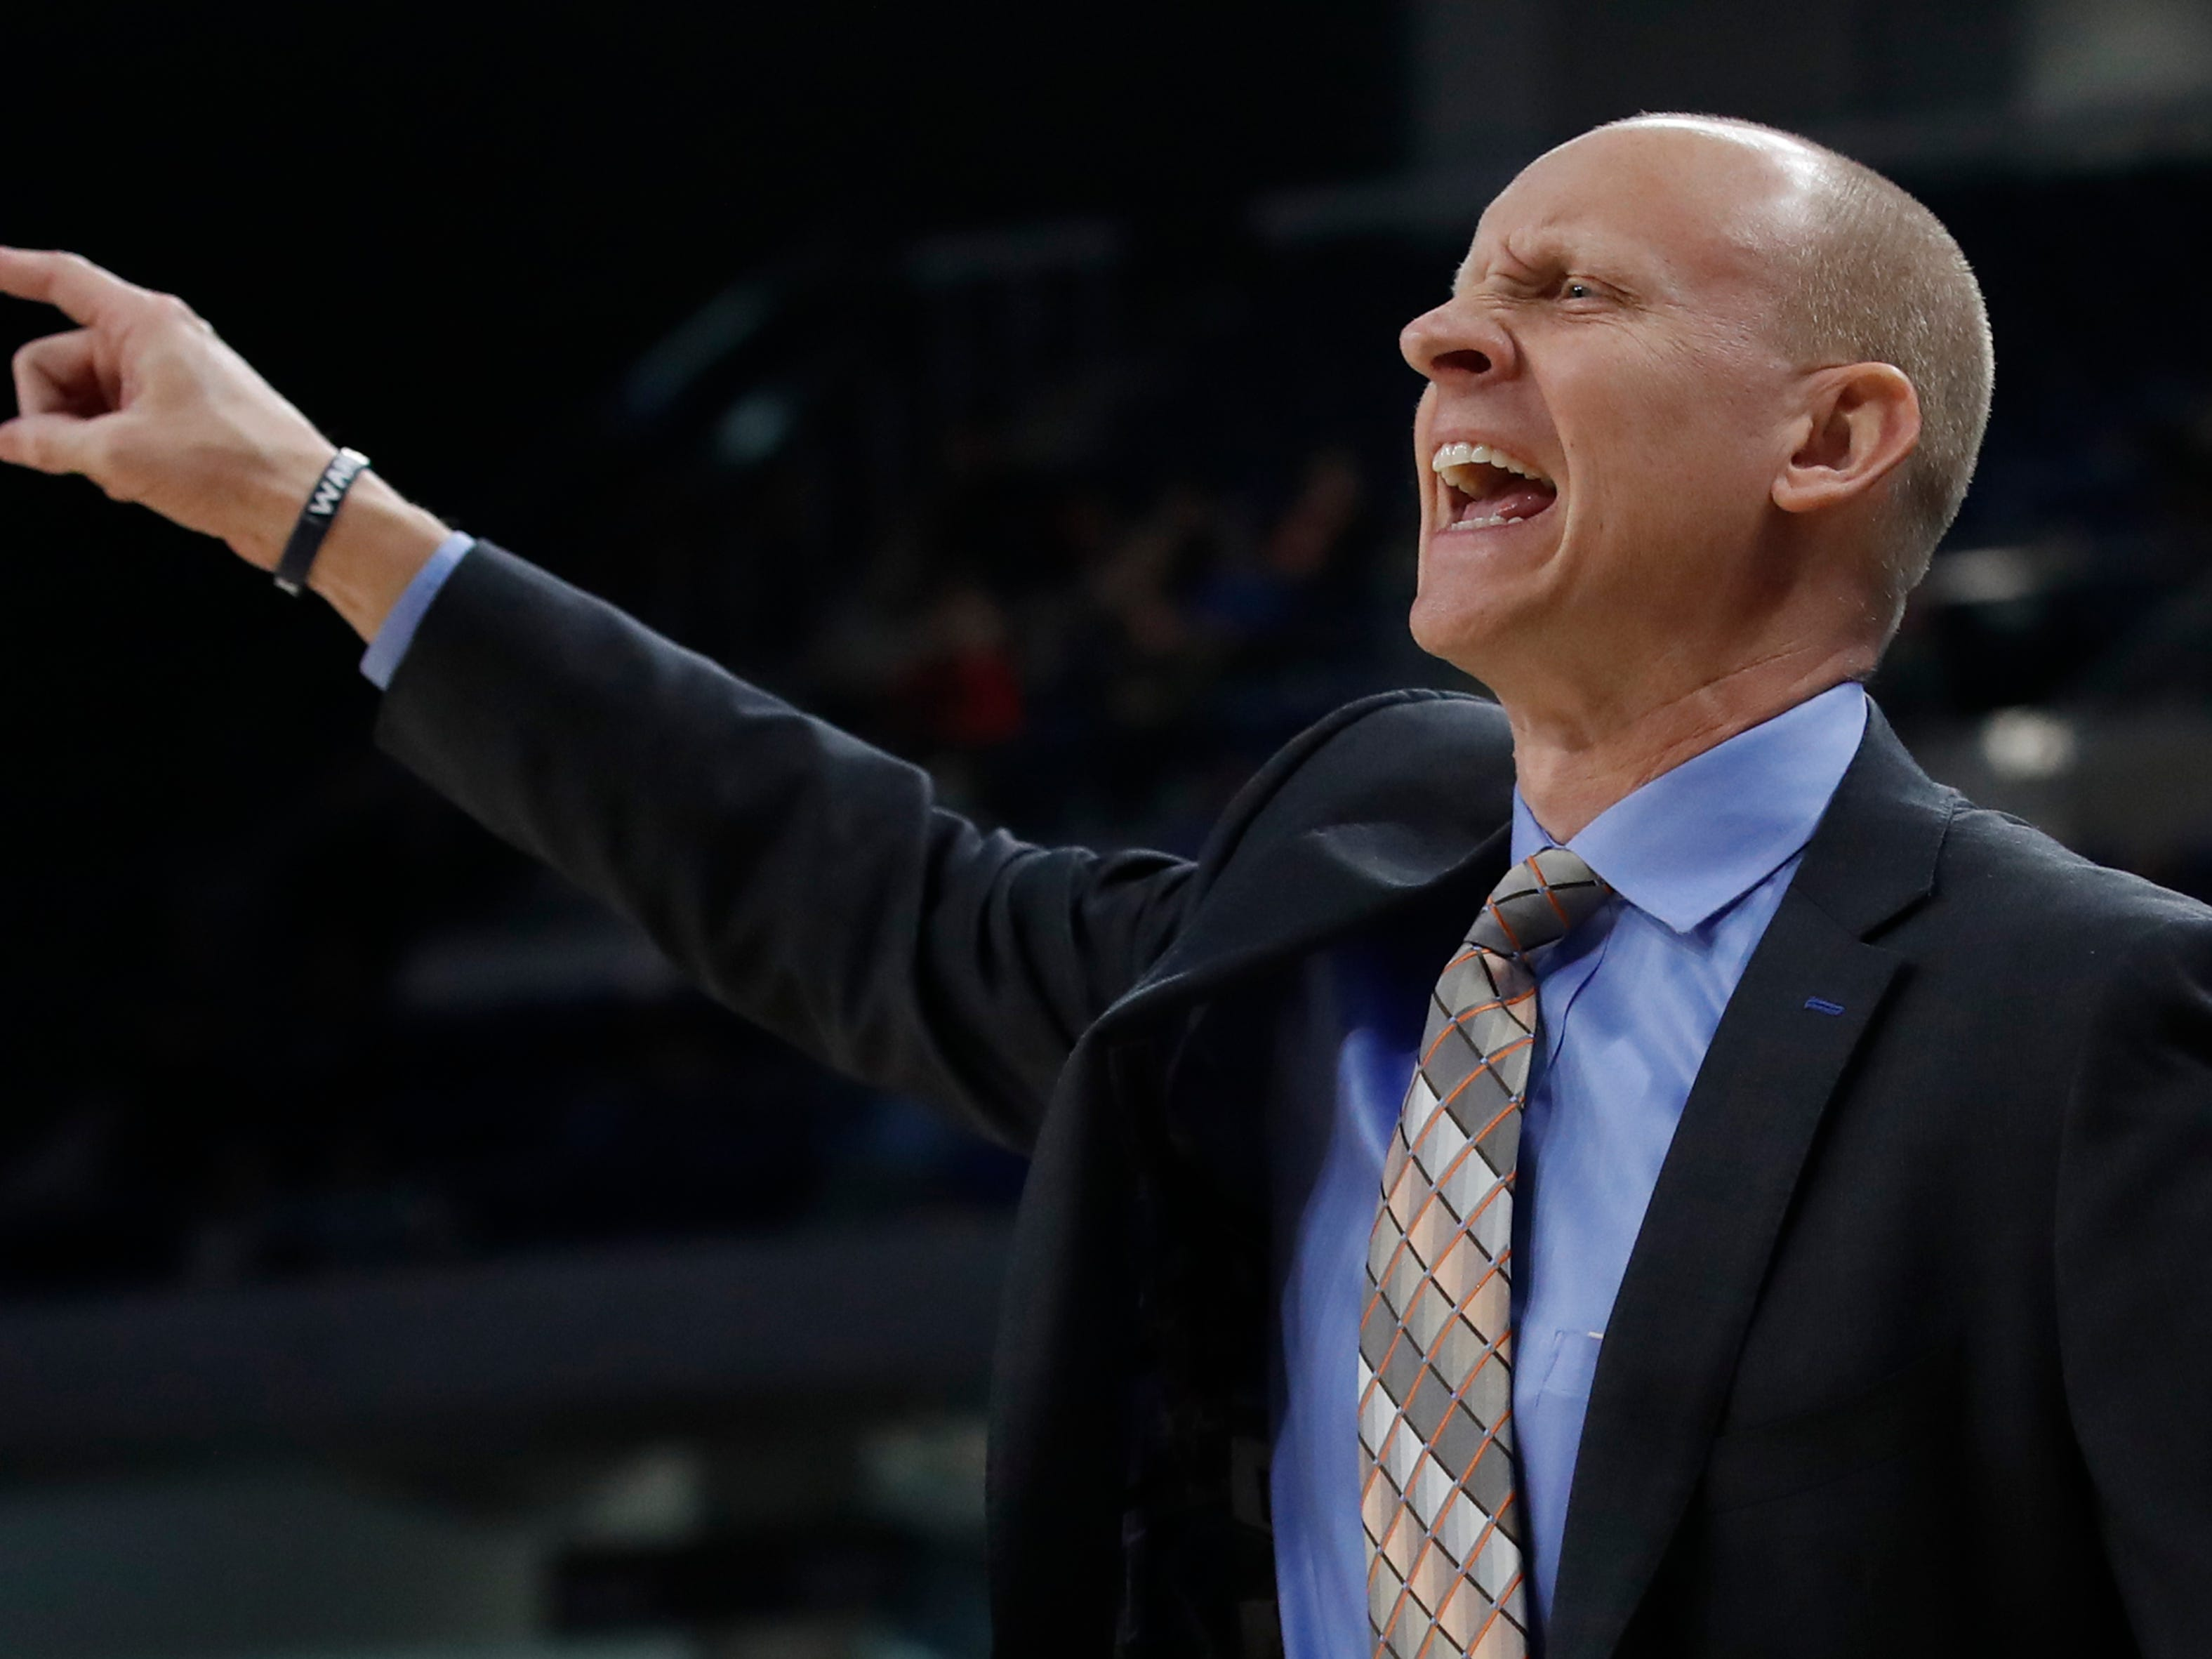 Xavier coach Chris Mack calls out to his players during the second half of an NCAA college basketball game against DePaul, Saturday, March 3, 2018, in Chicago, Ill. (AP Photo/Jim Young)